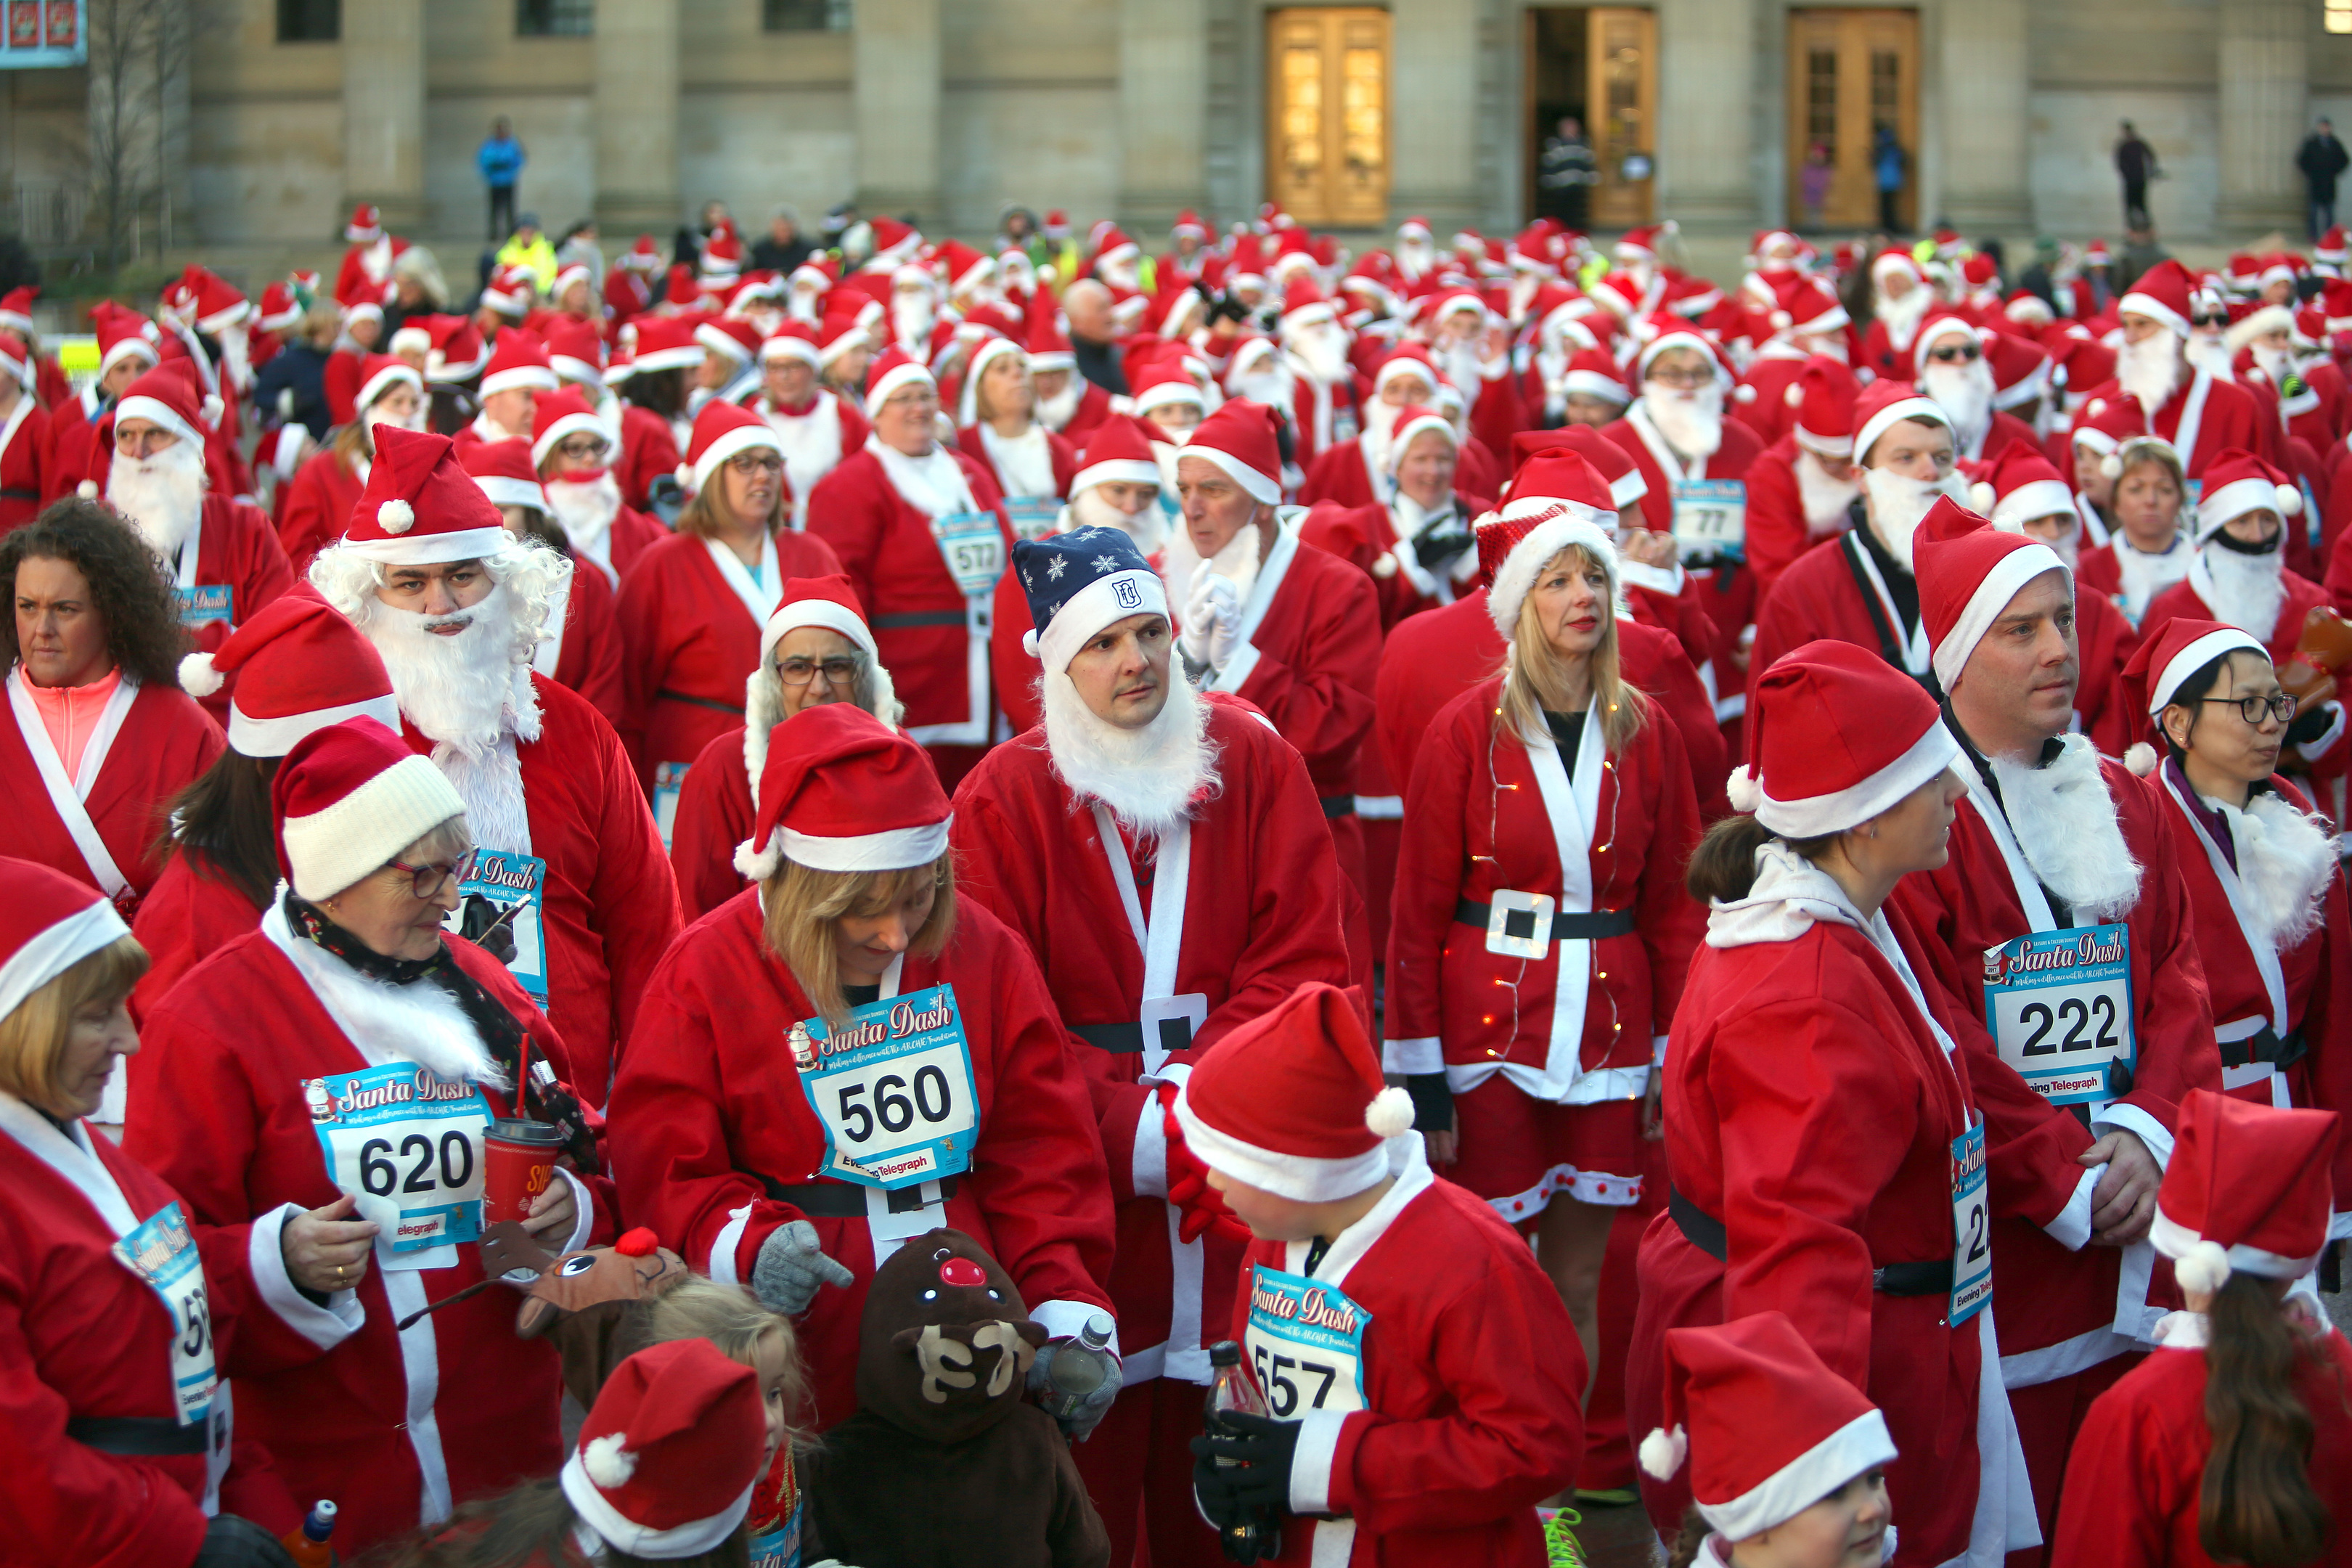 Some of the participants at the first ever Santa Dash